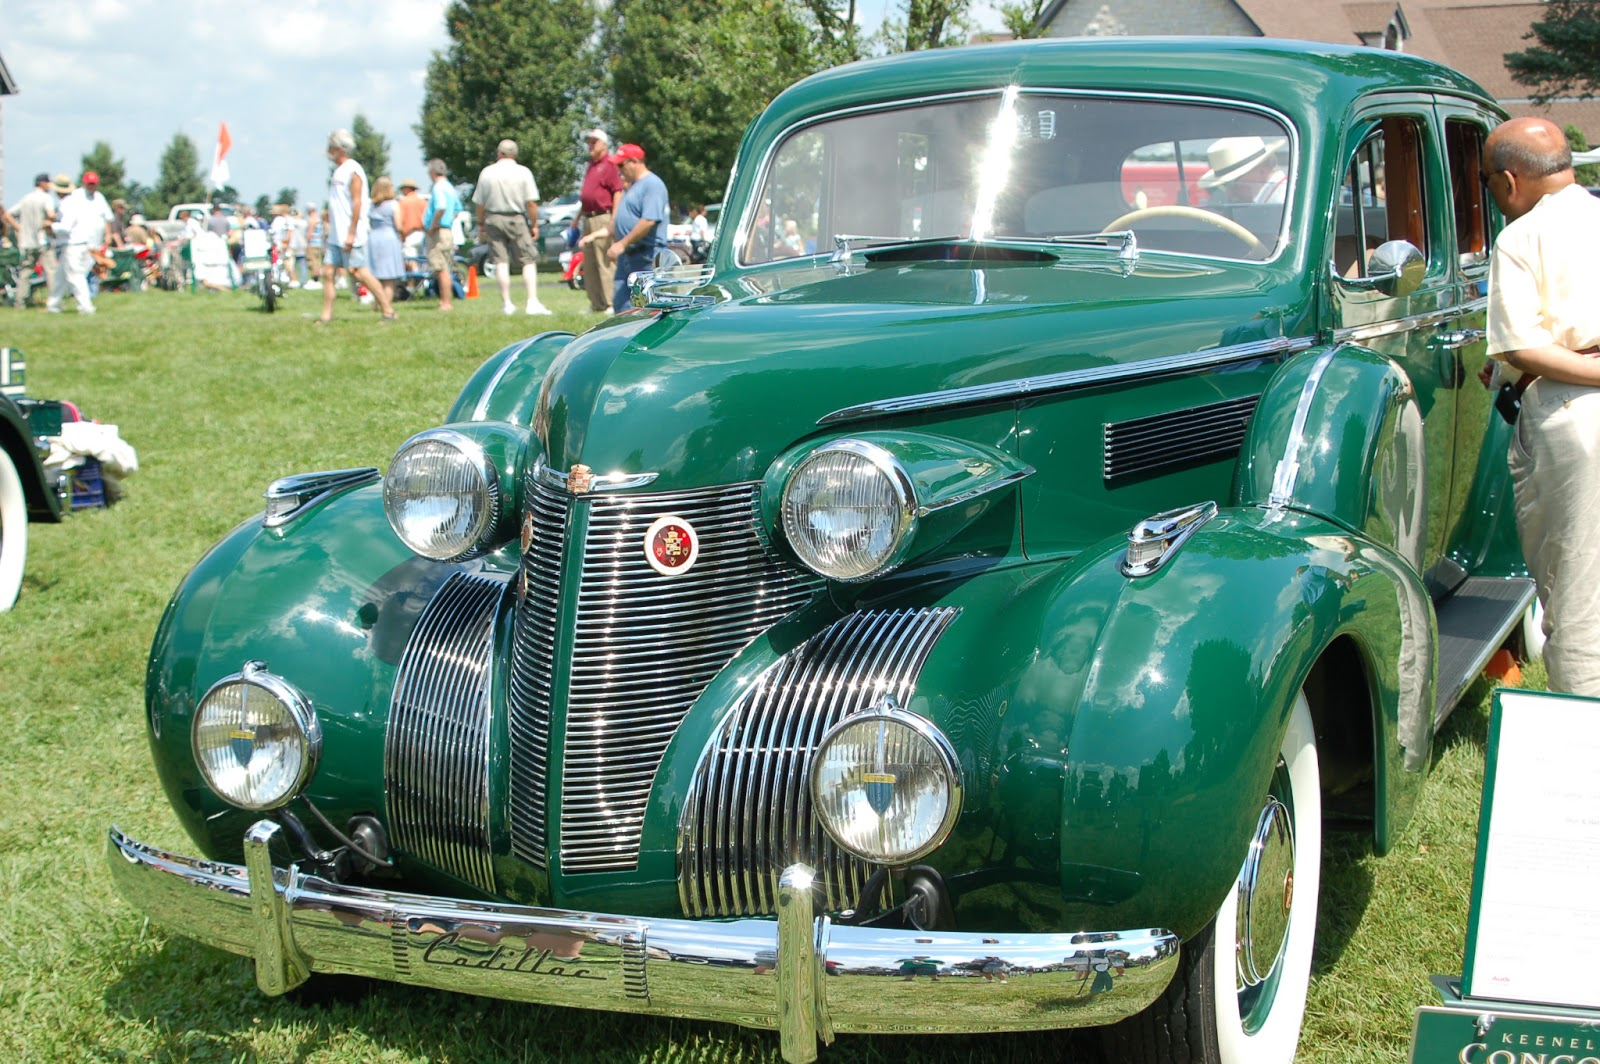 Turnerbudds Car Blog: Pre-War Classics At Keenland